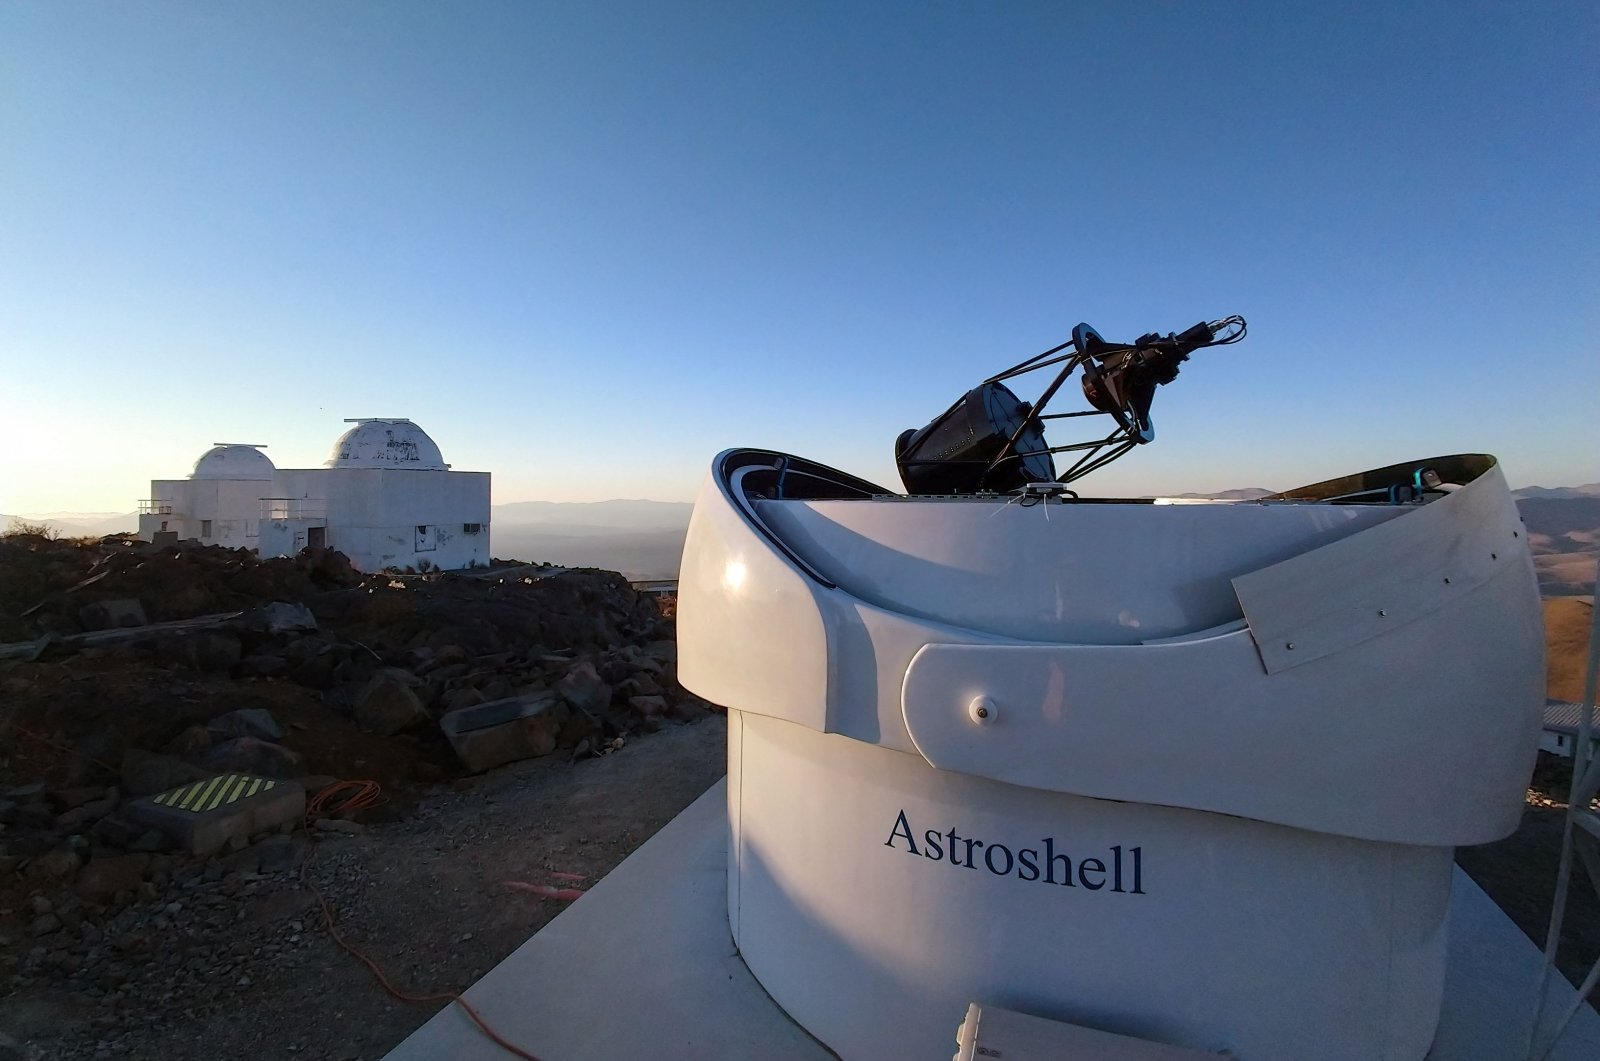 The open dome of European Space Agency's Test-Bed Telescope 2 can be seen among its fellow telescopes at European Southern Observatory's La Silla Observatory in La Higuera, Coquimbo, Chile, April 27, 2021. (European Southern Observatory via AFP)